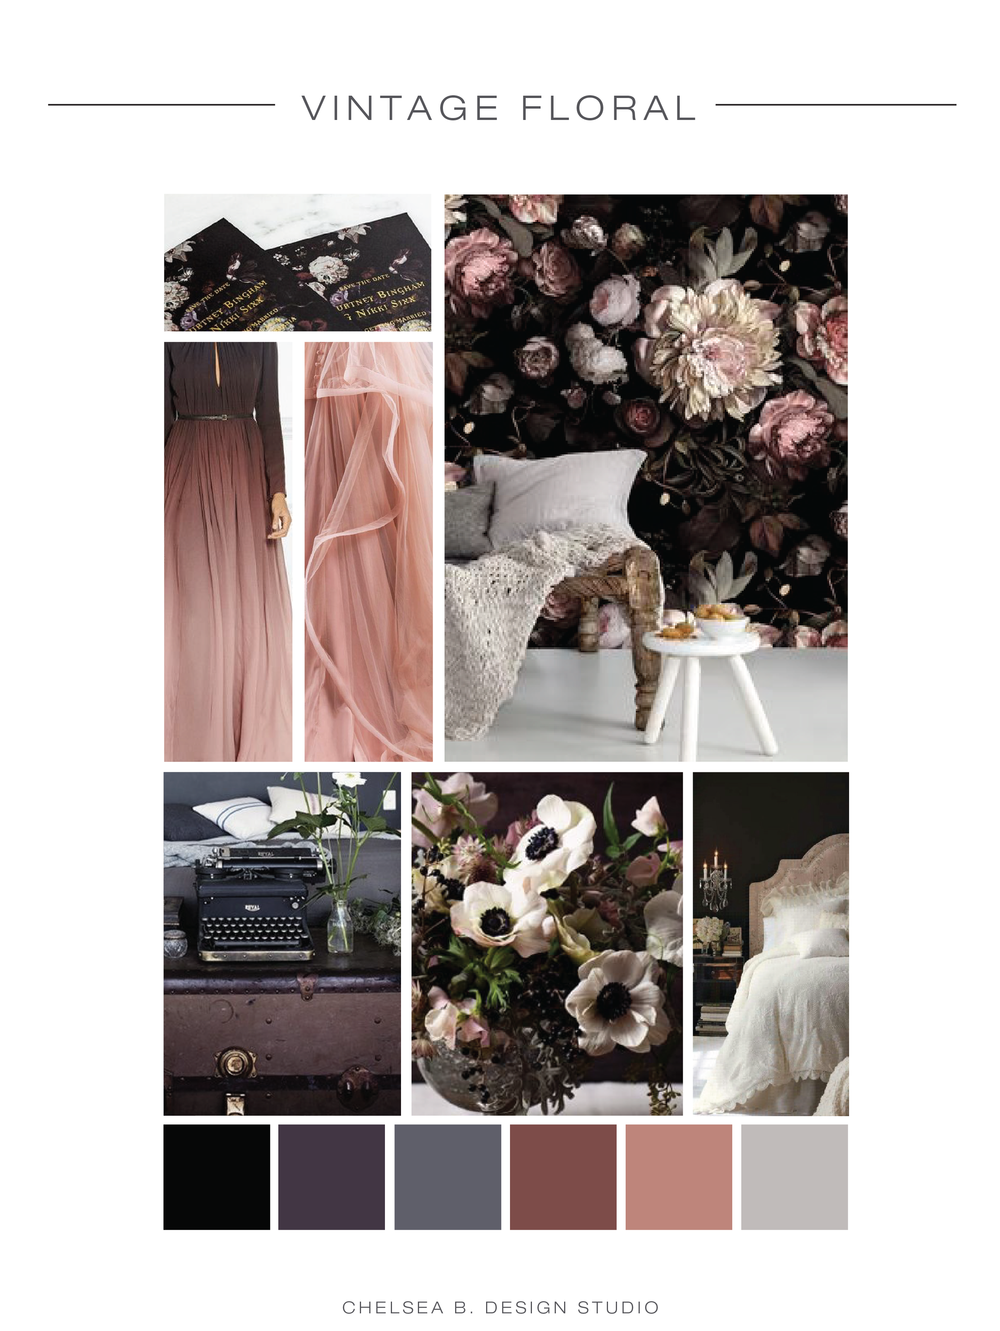 princeton wedding invitation designer | mood board | inspiration board |vintage moody floral